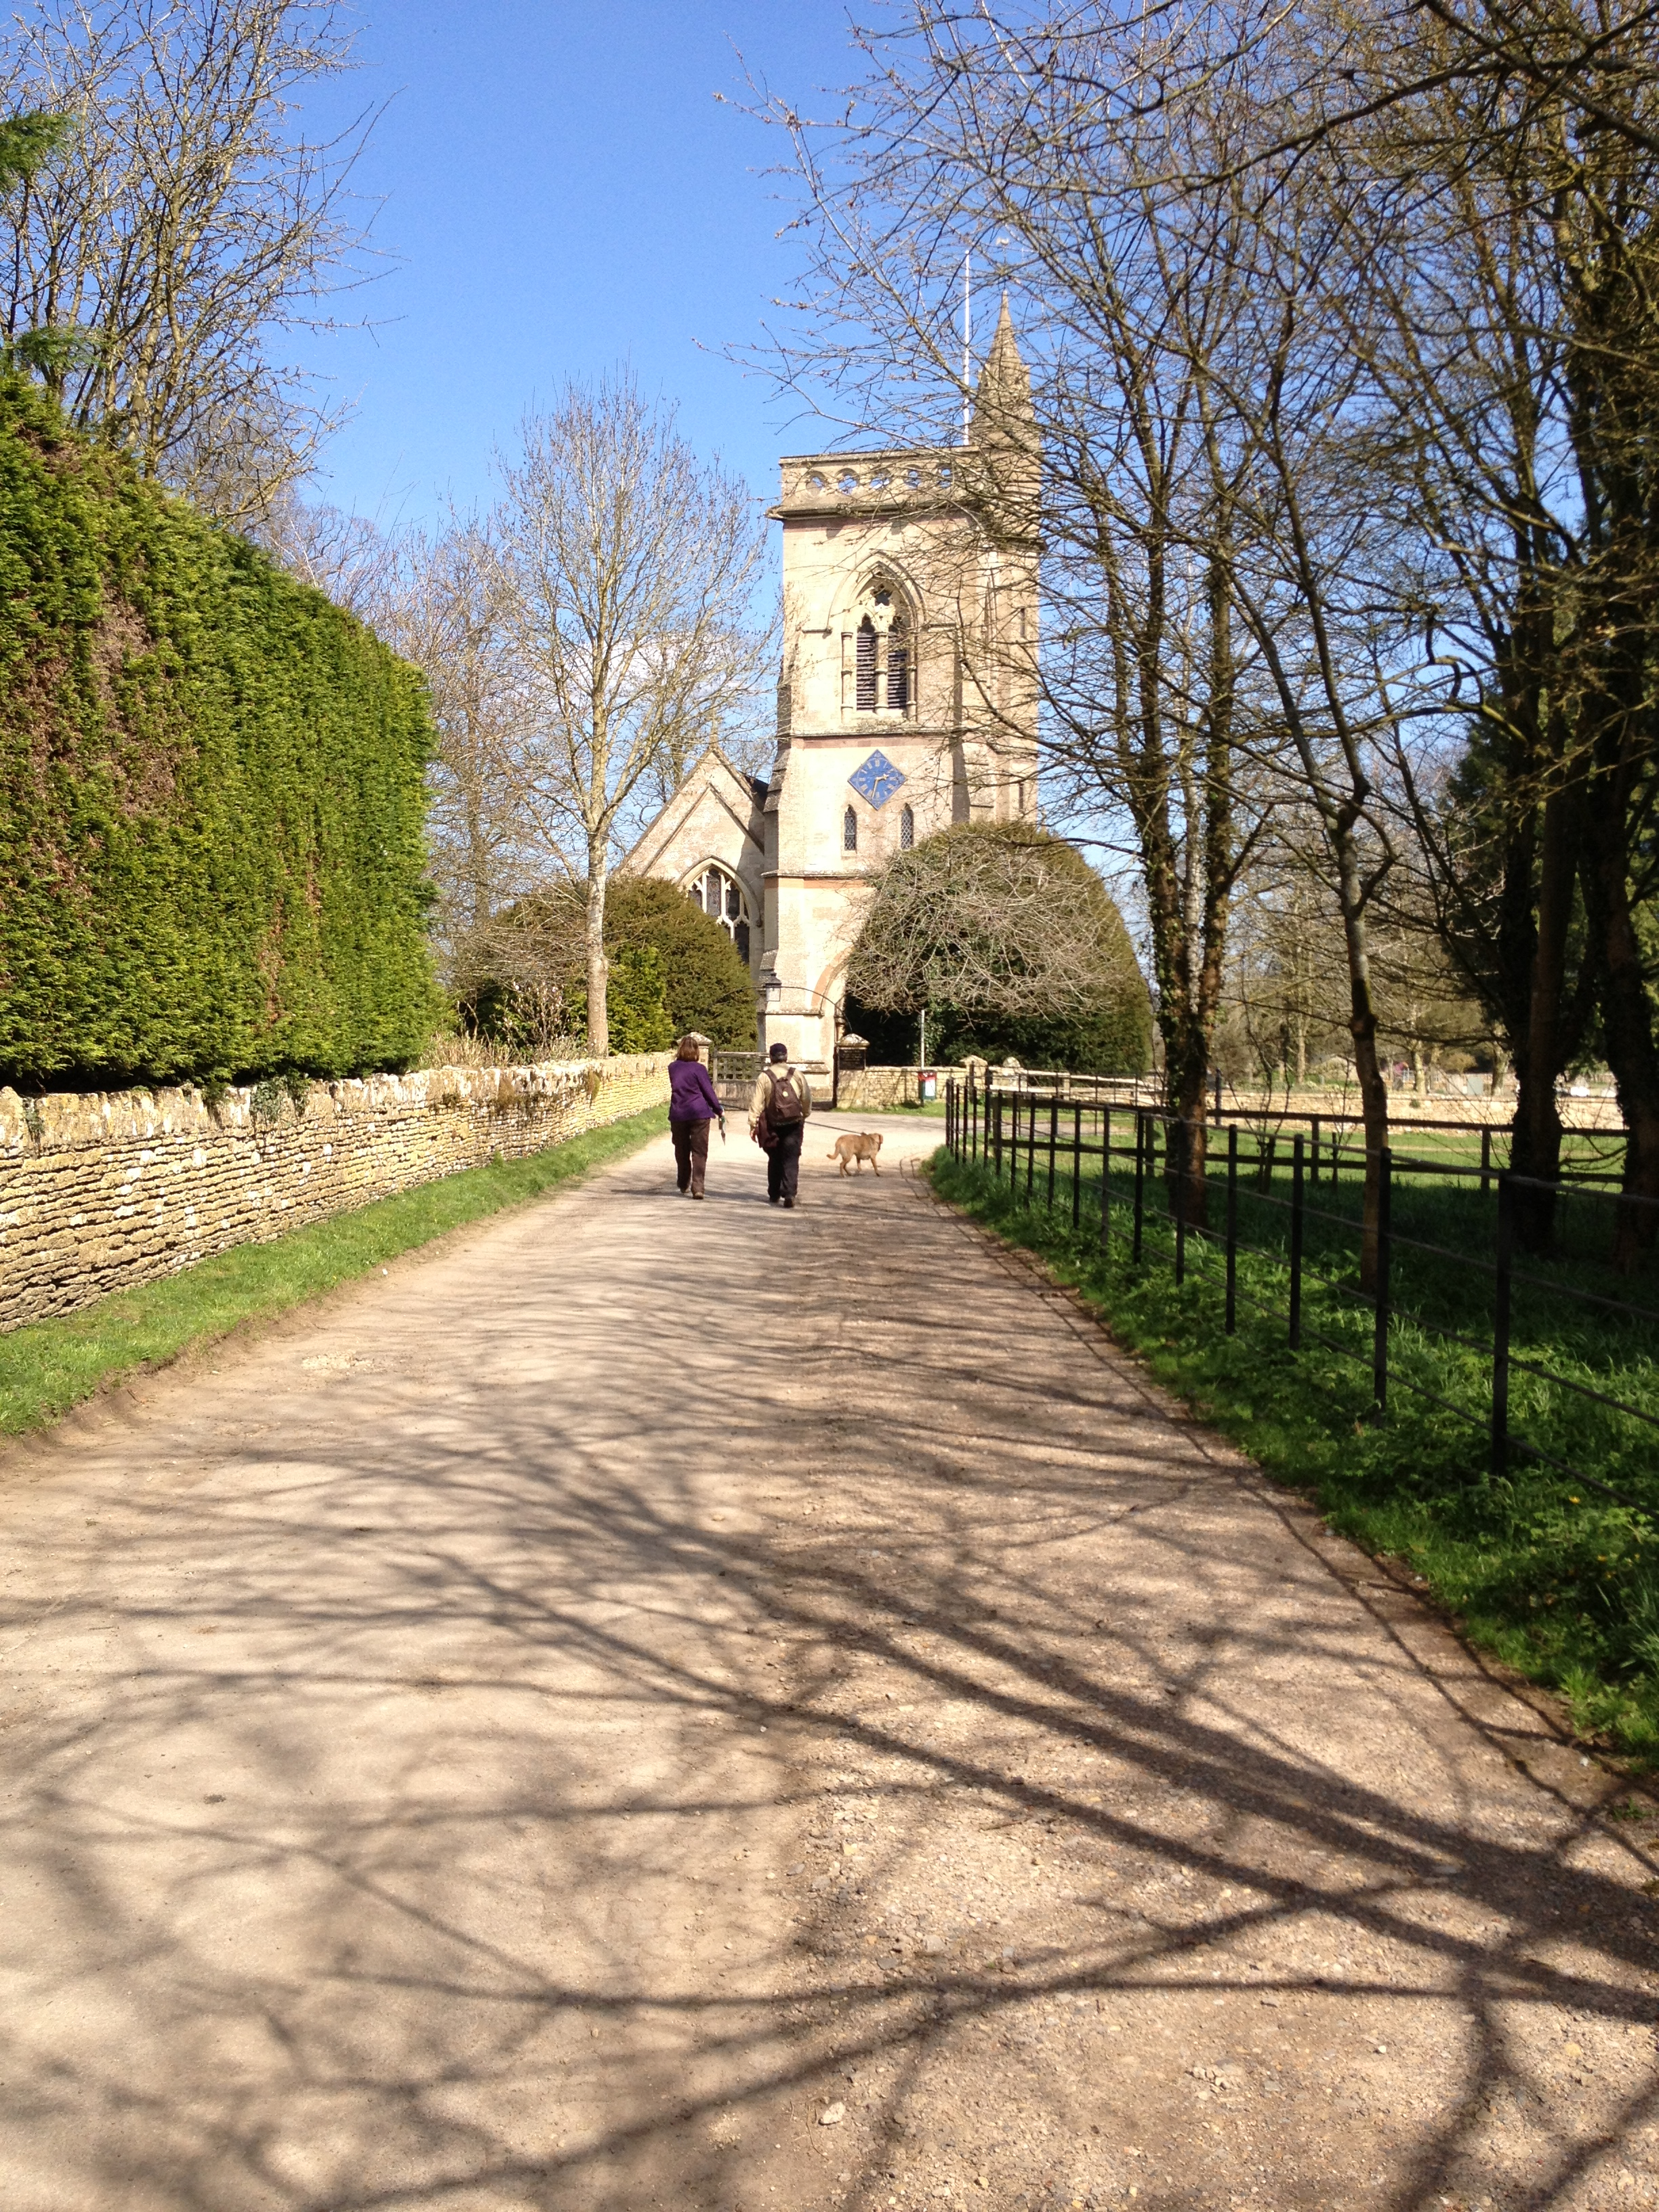 Trek Between Churches in the Benefice, May 2013